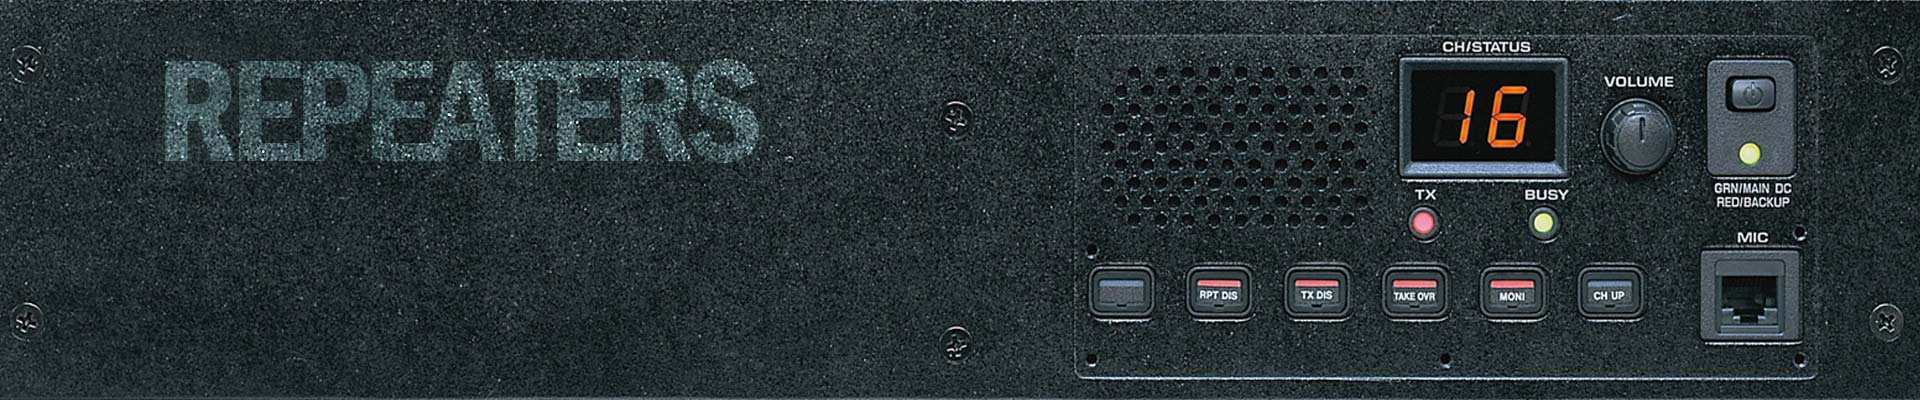 Two Way Radio Division image